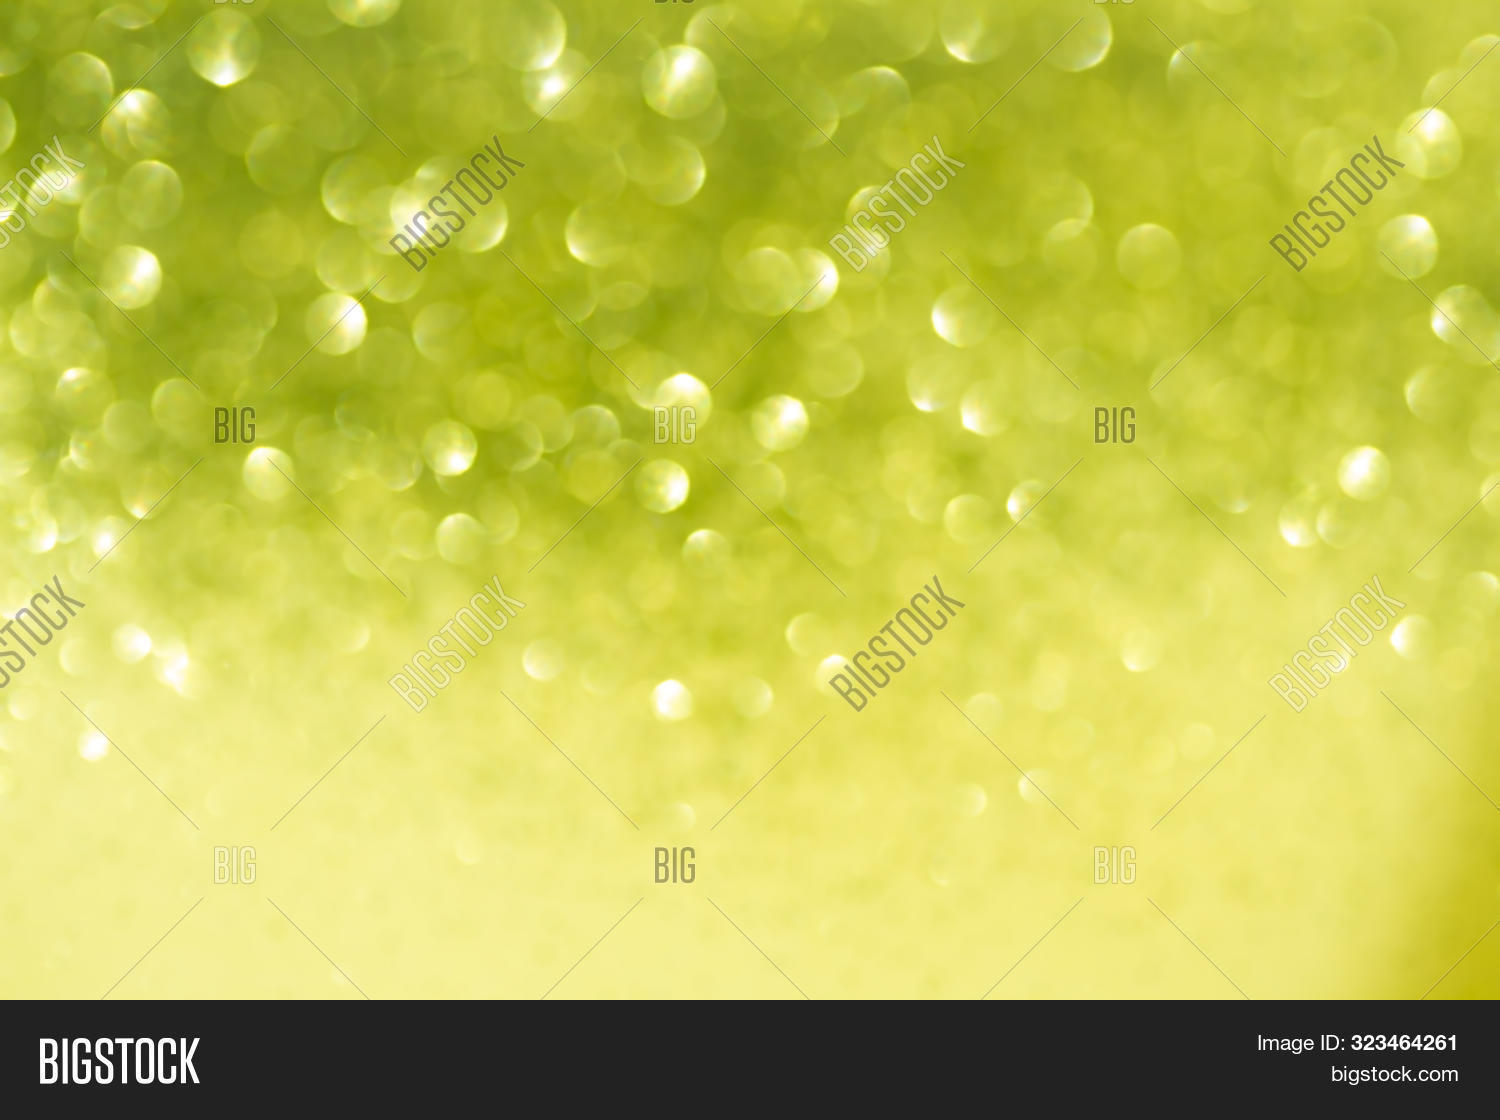 Colored Abstract Blurred Light Glitter Background Layout Design Can Be Use For Background Concept Or